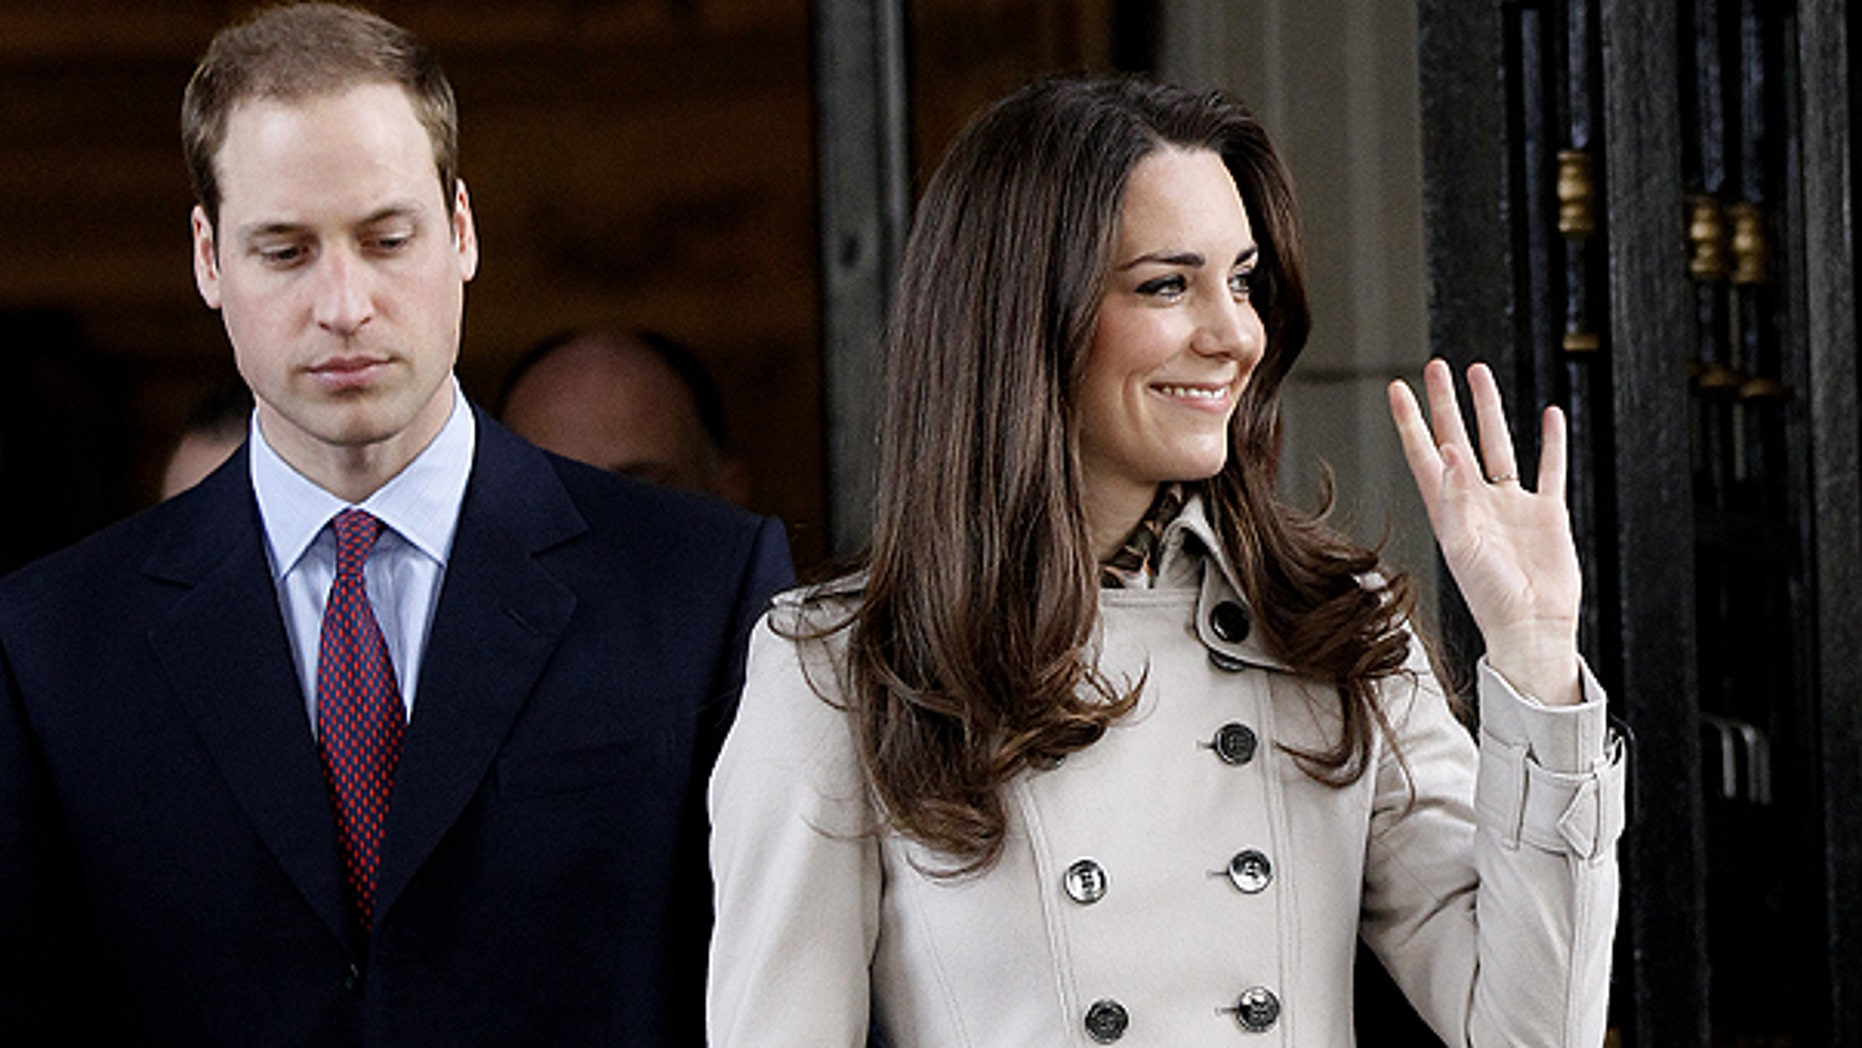 March 8: Britain's Prince William and his fiance Kate Middleton leave City Hall in Belfast, Northern Ireland.